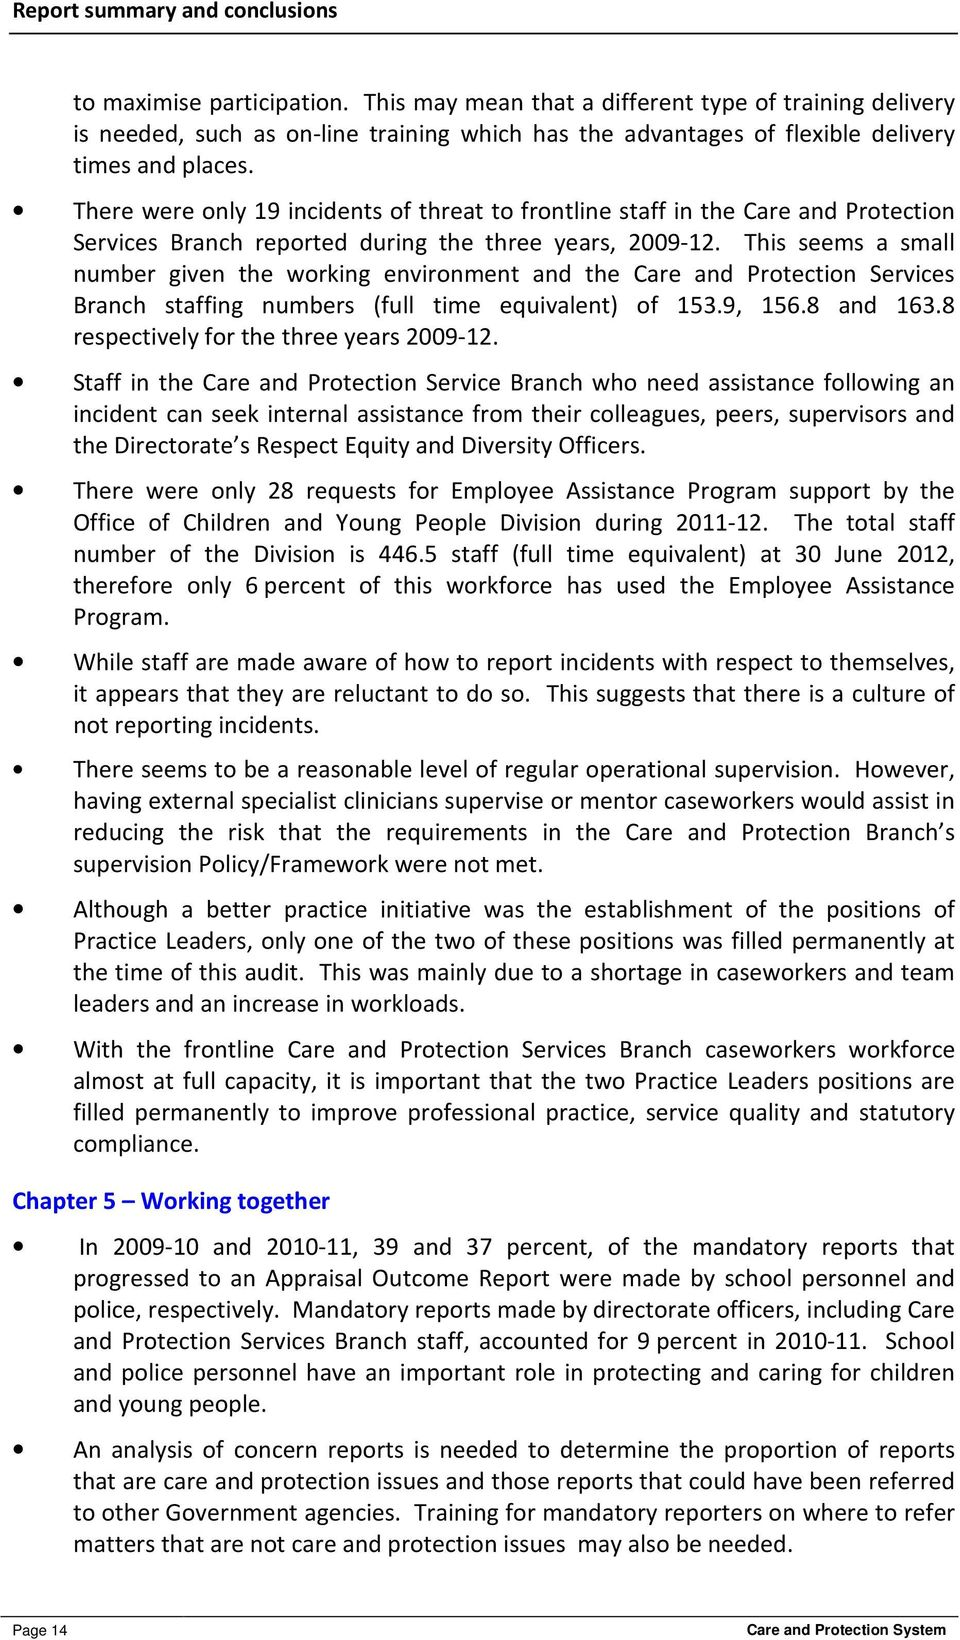 There were only 19 incidents of threat to frontline staff in the Care and Protection Services Branch reported during the three years, 2009-12.